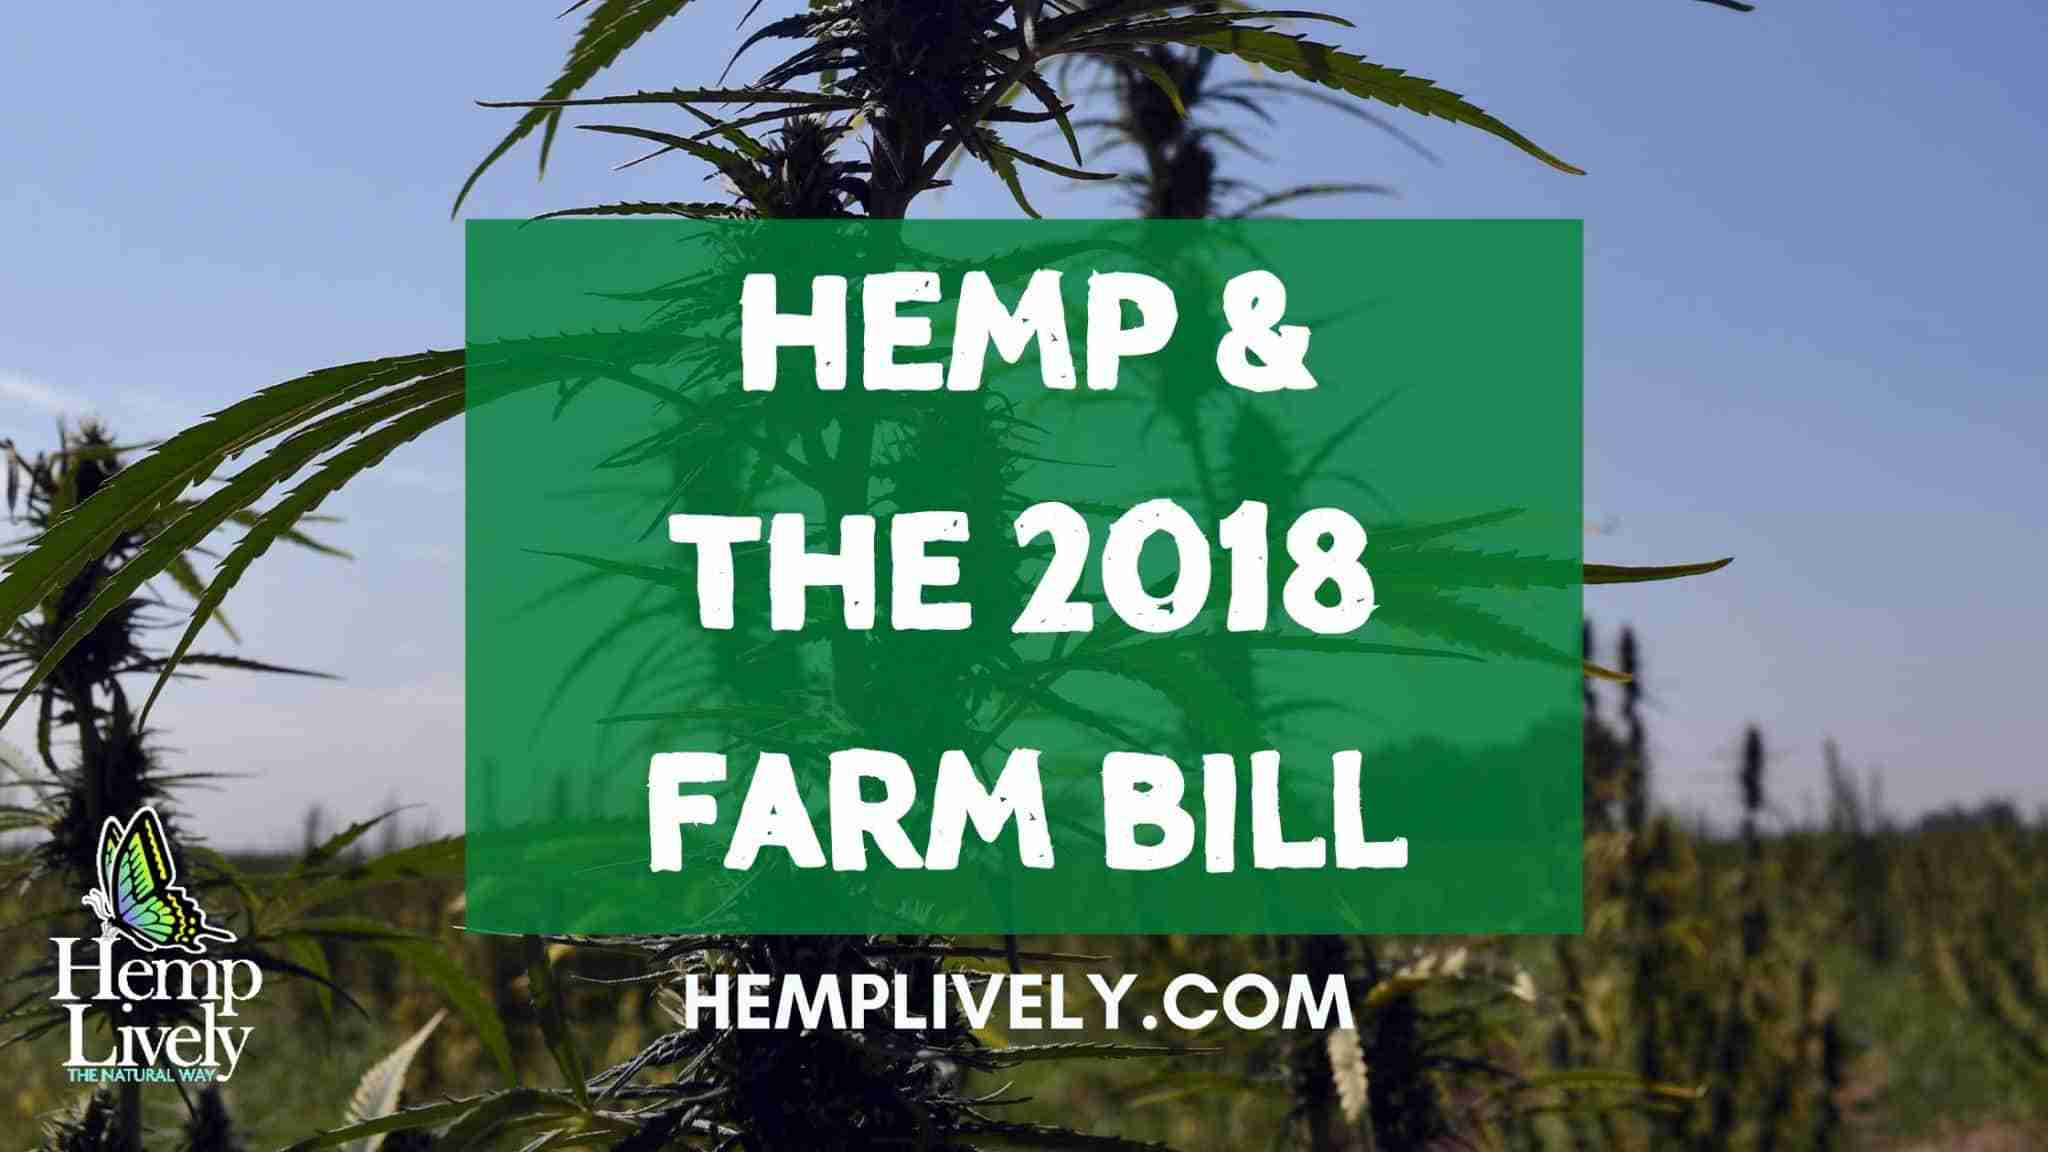 Learn More About Hemp and the 2018 Farm Bill